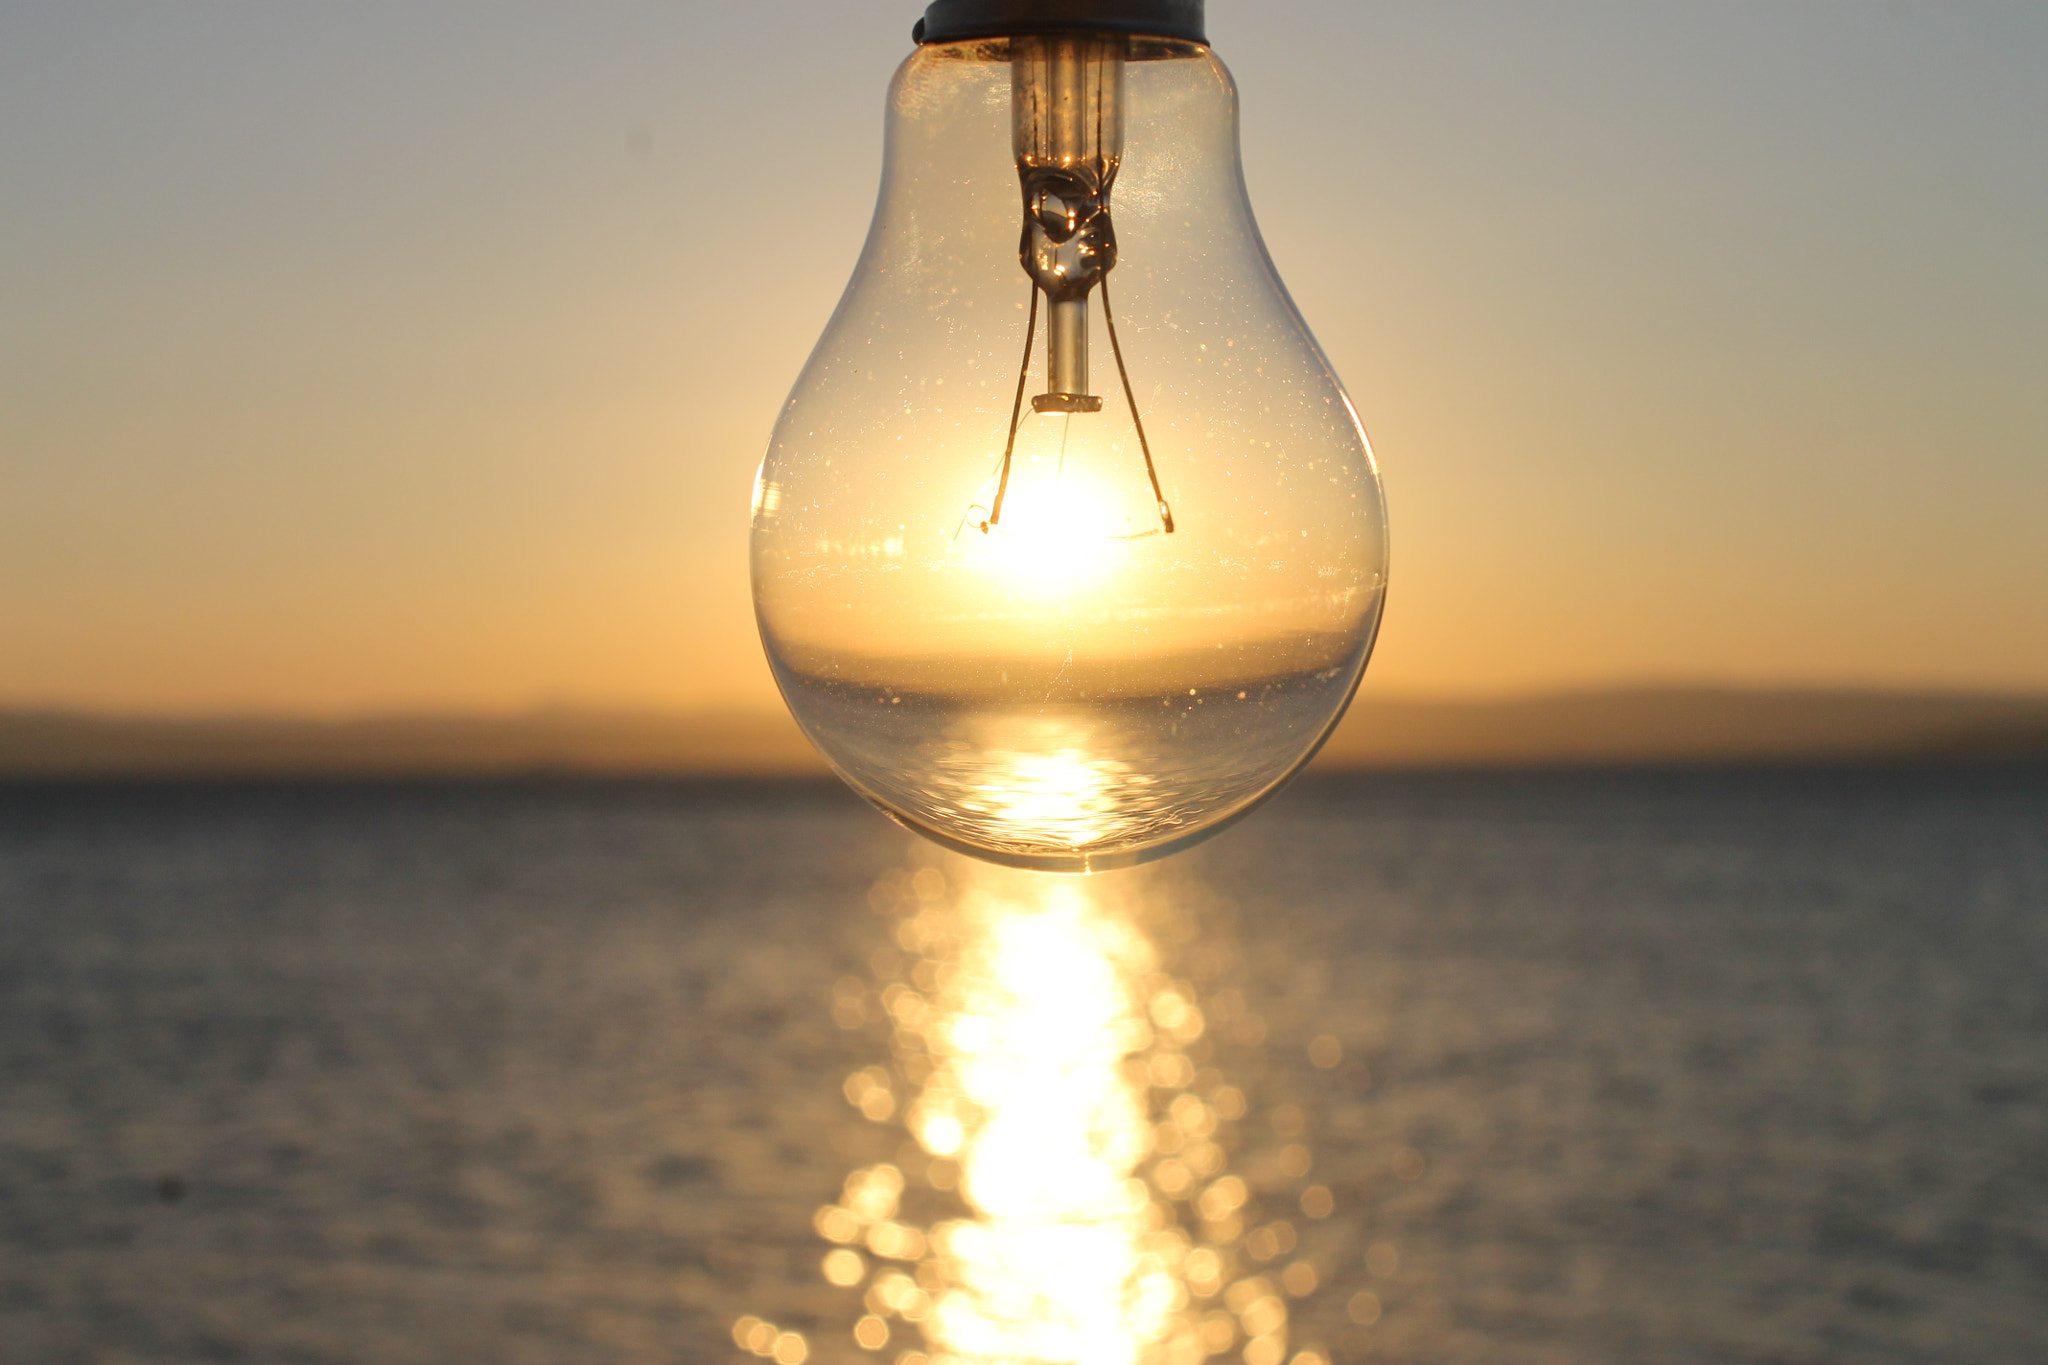 Photograph Bulb by Kaan Celik on 500px